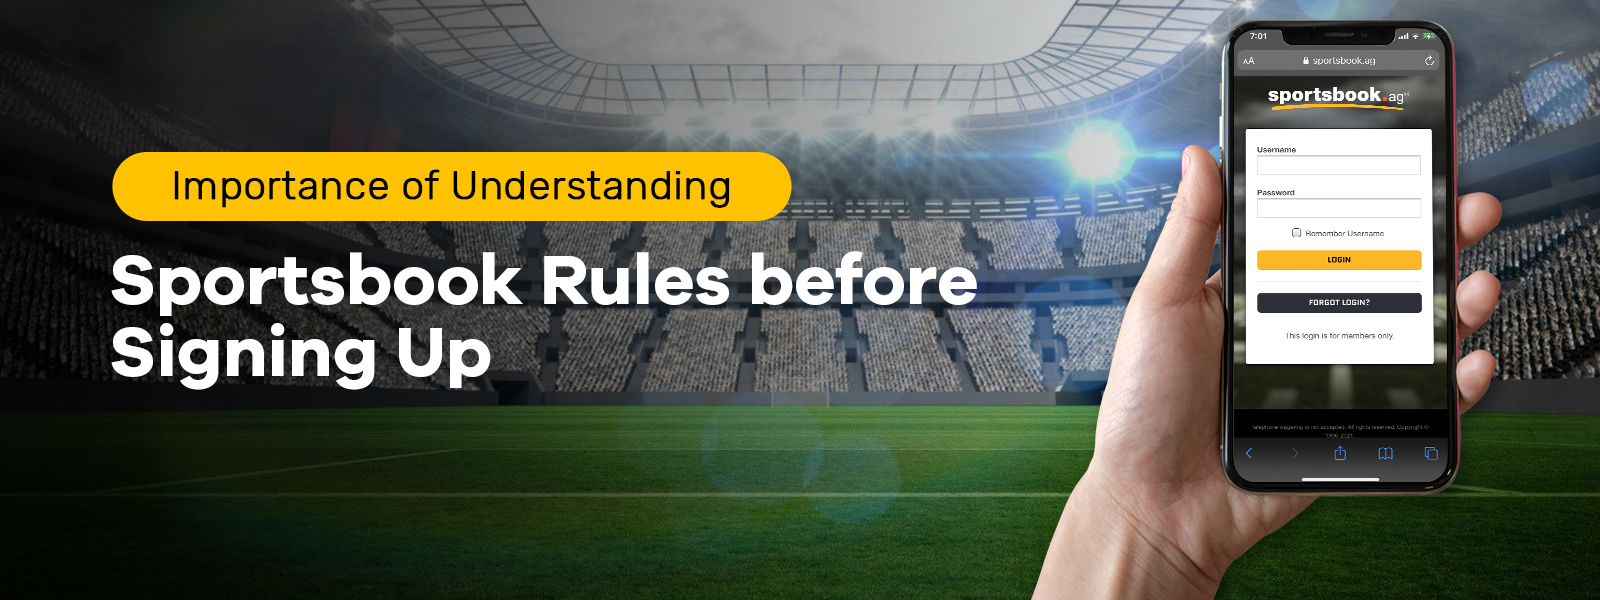 Importance Of Understanding Sportsbook Rules Before Signing Up